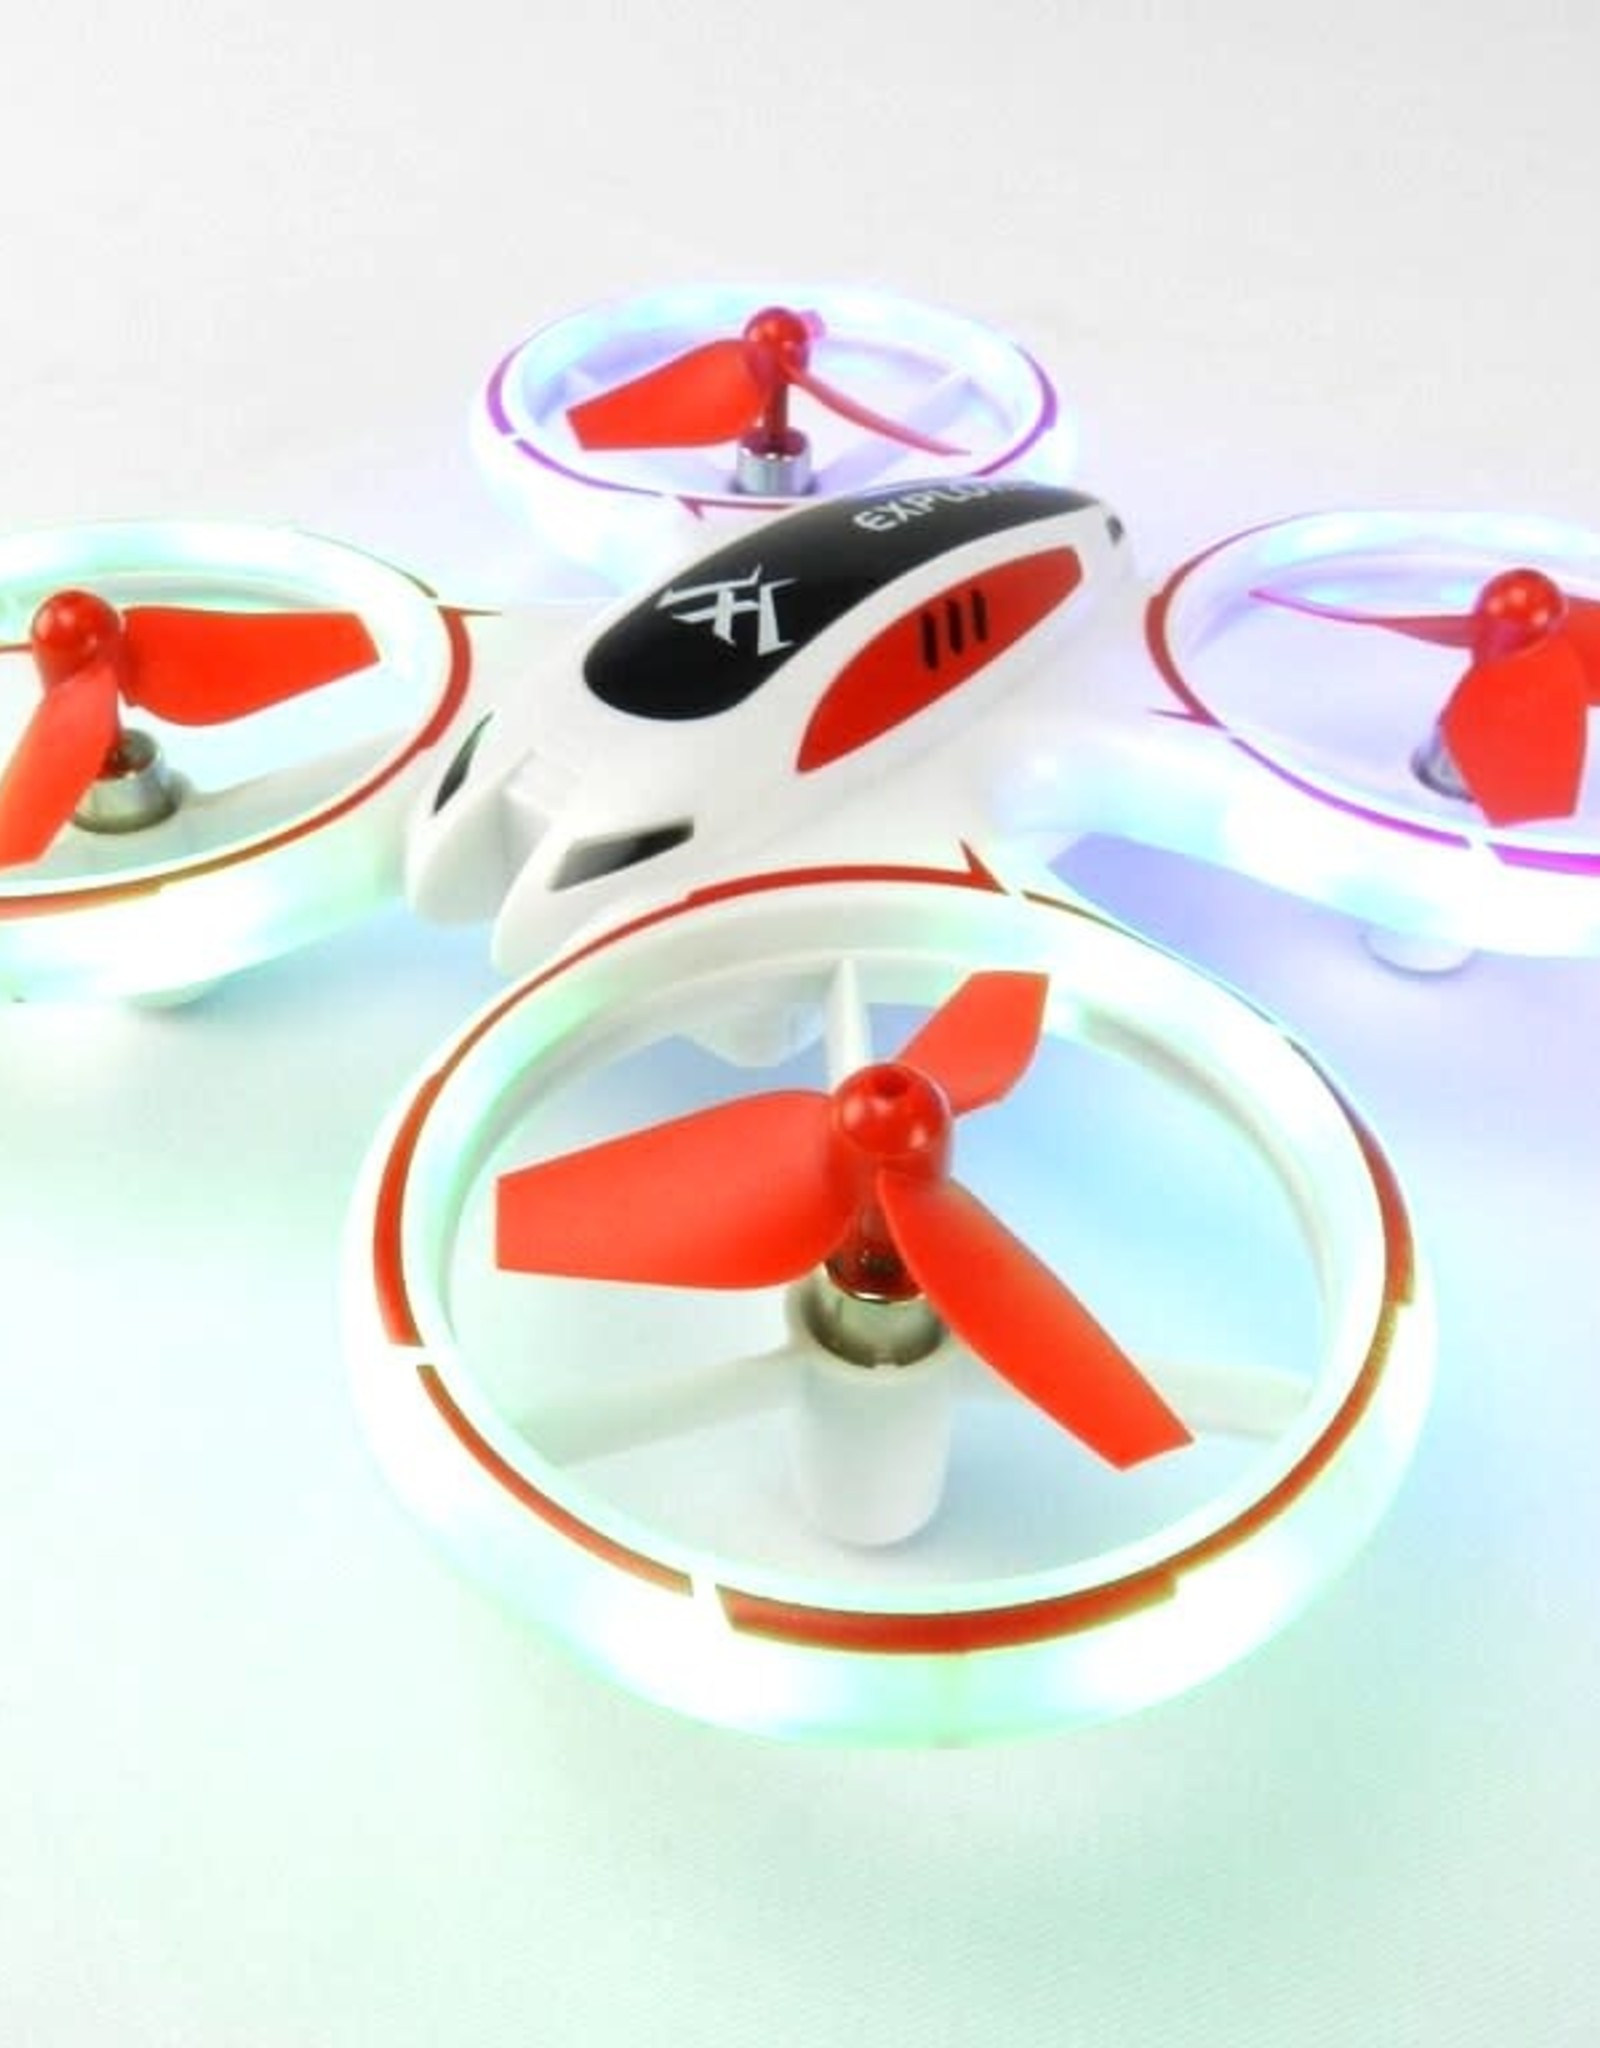 HX 759 Voyager Quadcopter